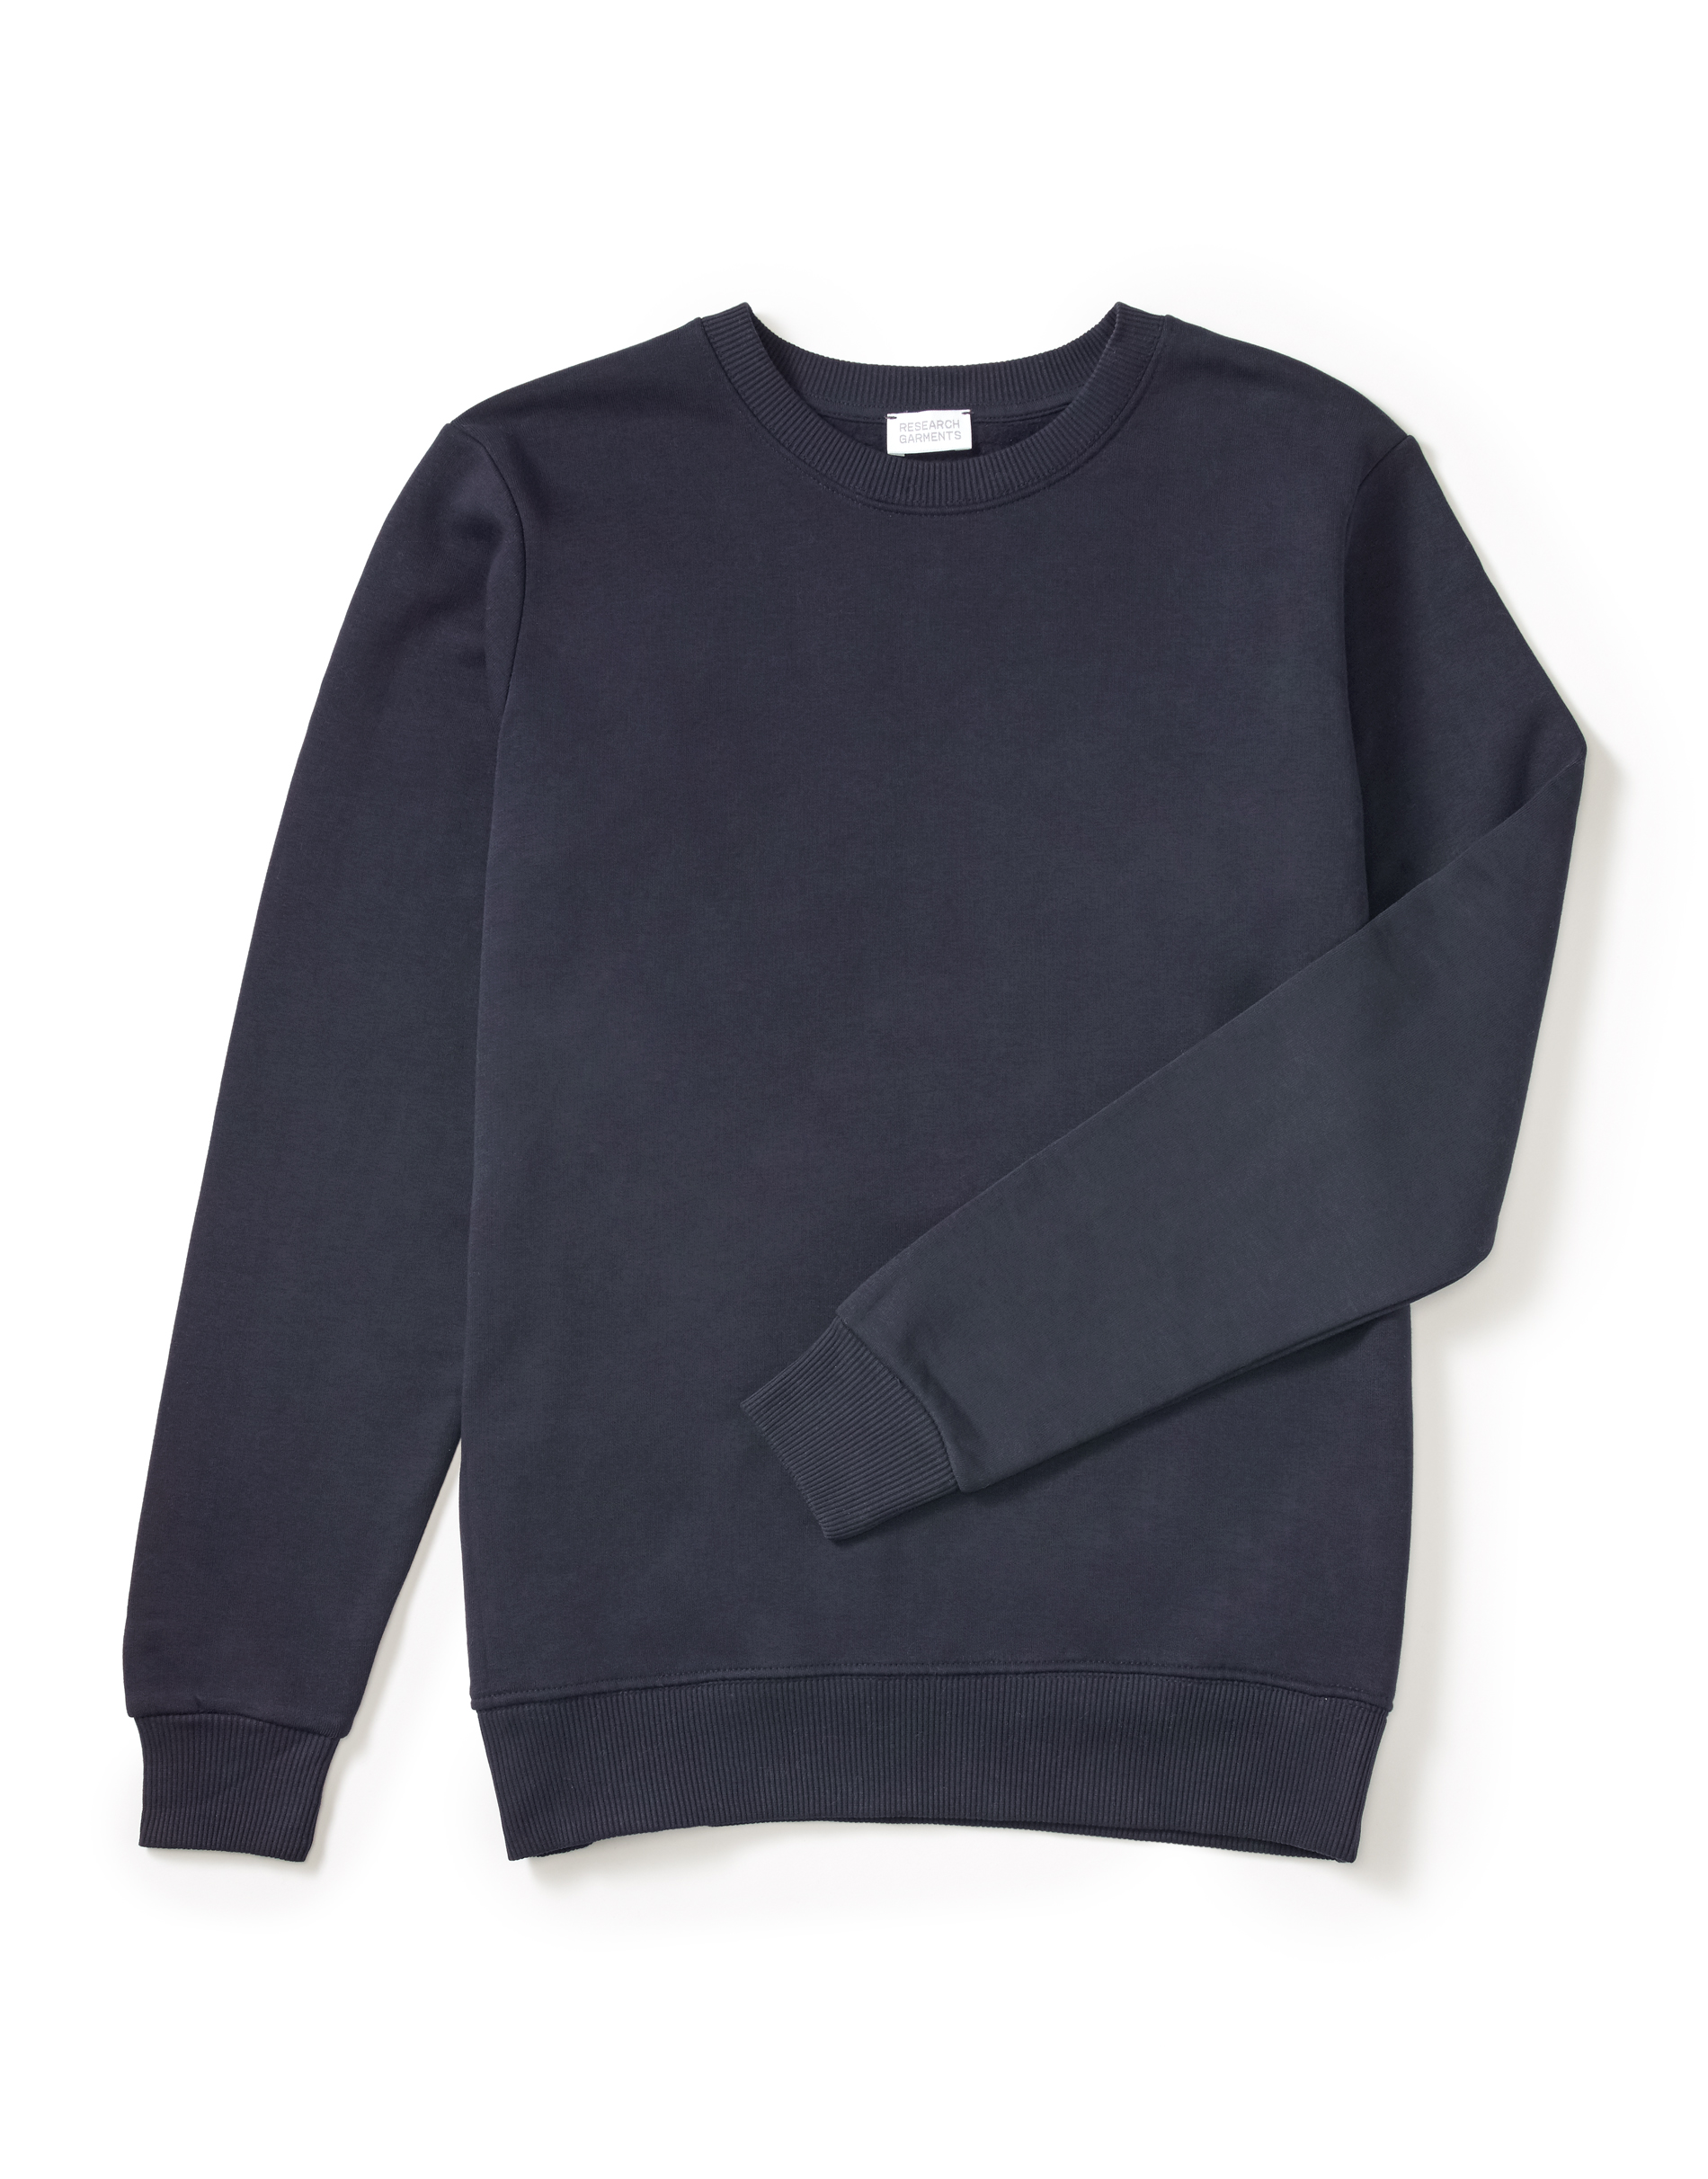 Research Garments The Perfect Navy Sweat